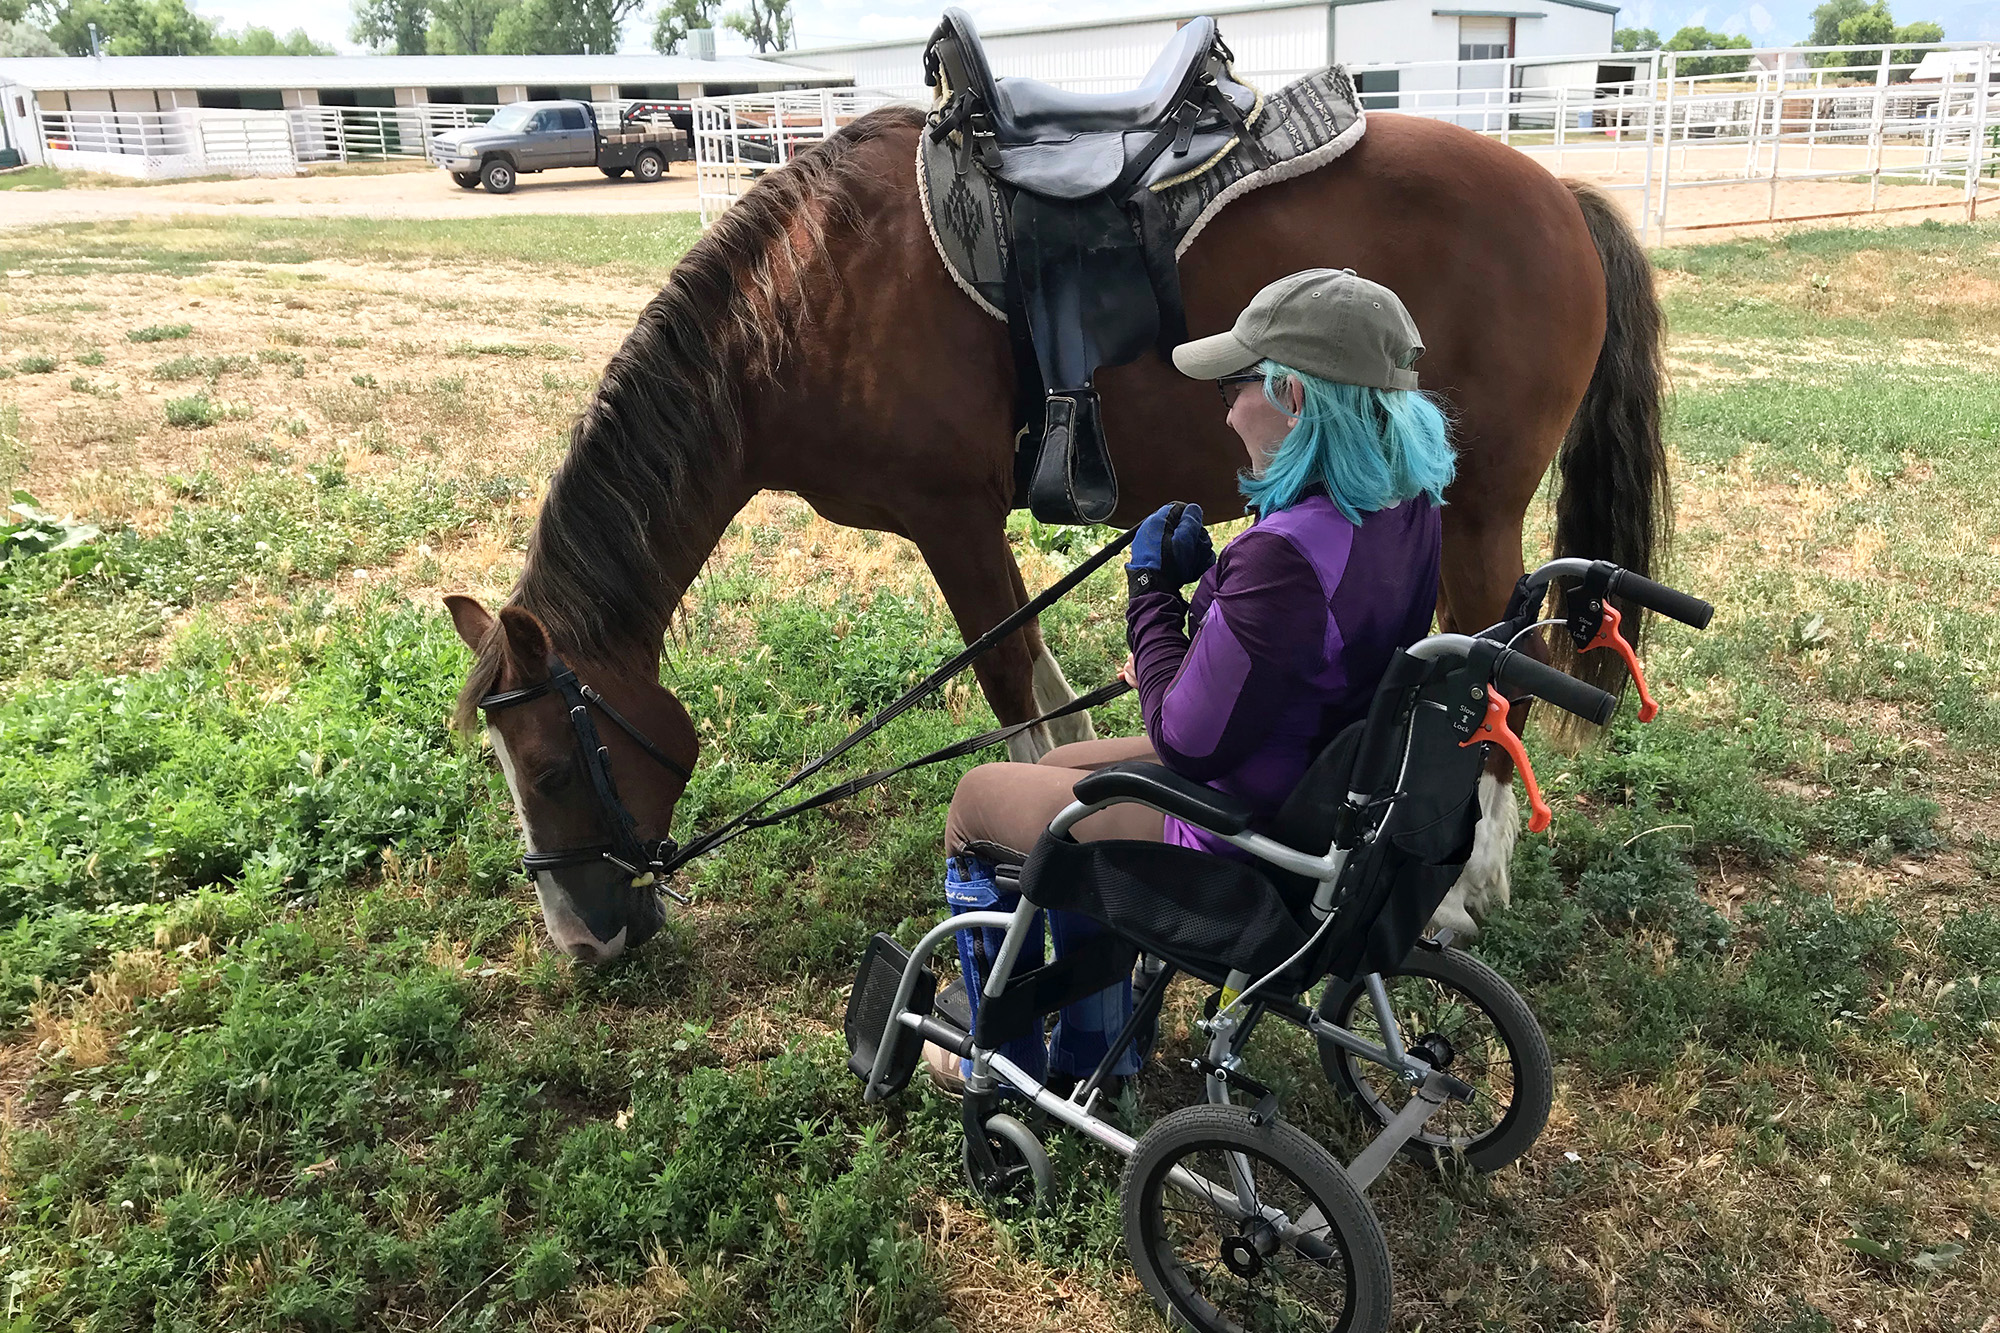 Andi Rudman with her horse, Rowan. Rudman is 29, lives in Boulder and has Klippel Feil Syndrome, a congenital defect that has resulted in severe chronic pain. Coronavirus has put her pain management health care on hold.